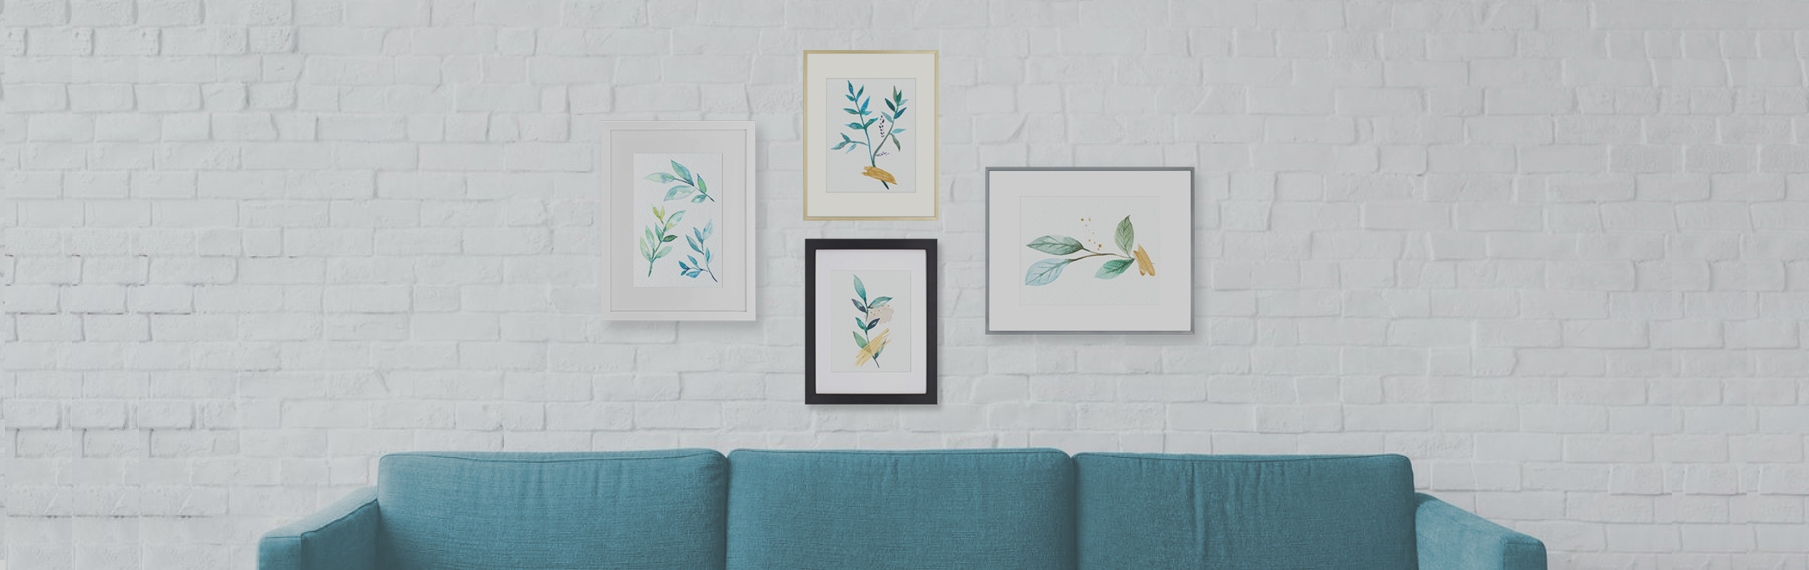 The Top 5 GSA Picture Frames of 2020